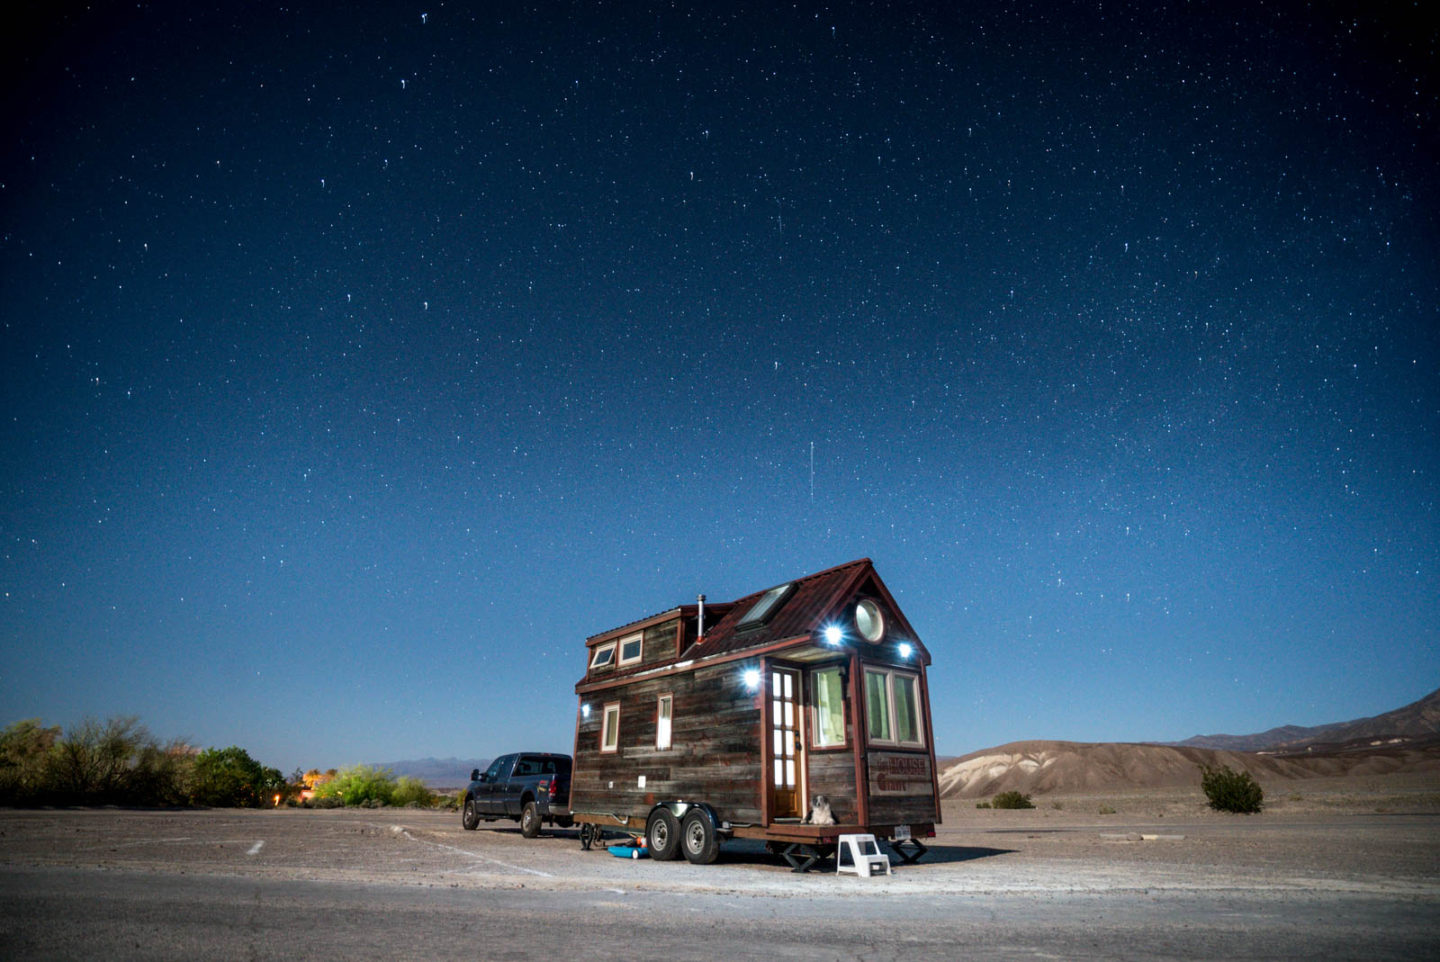 How to Get Wifi in Tiny House, RV, Bus, or Van